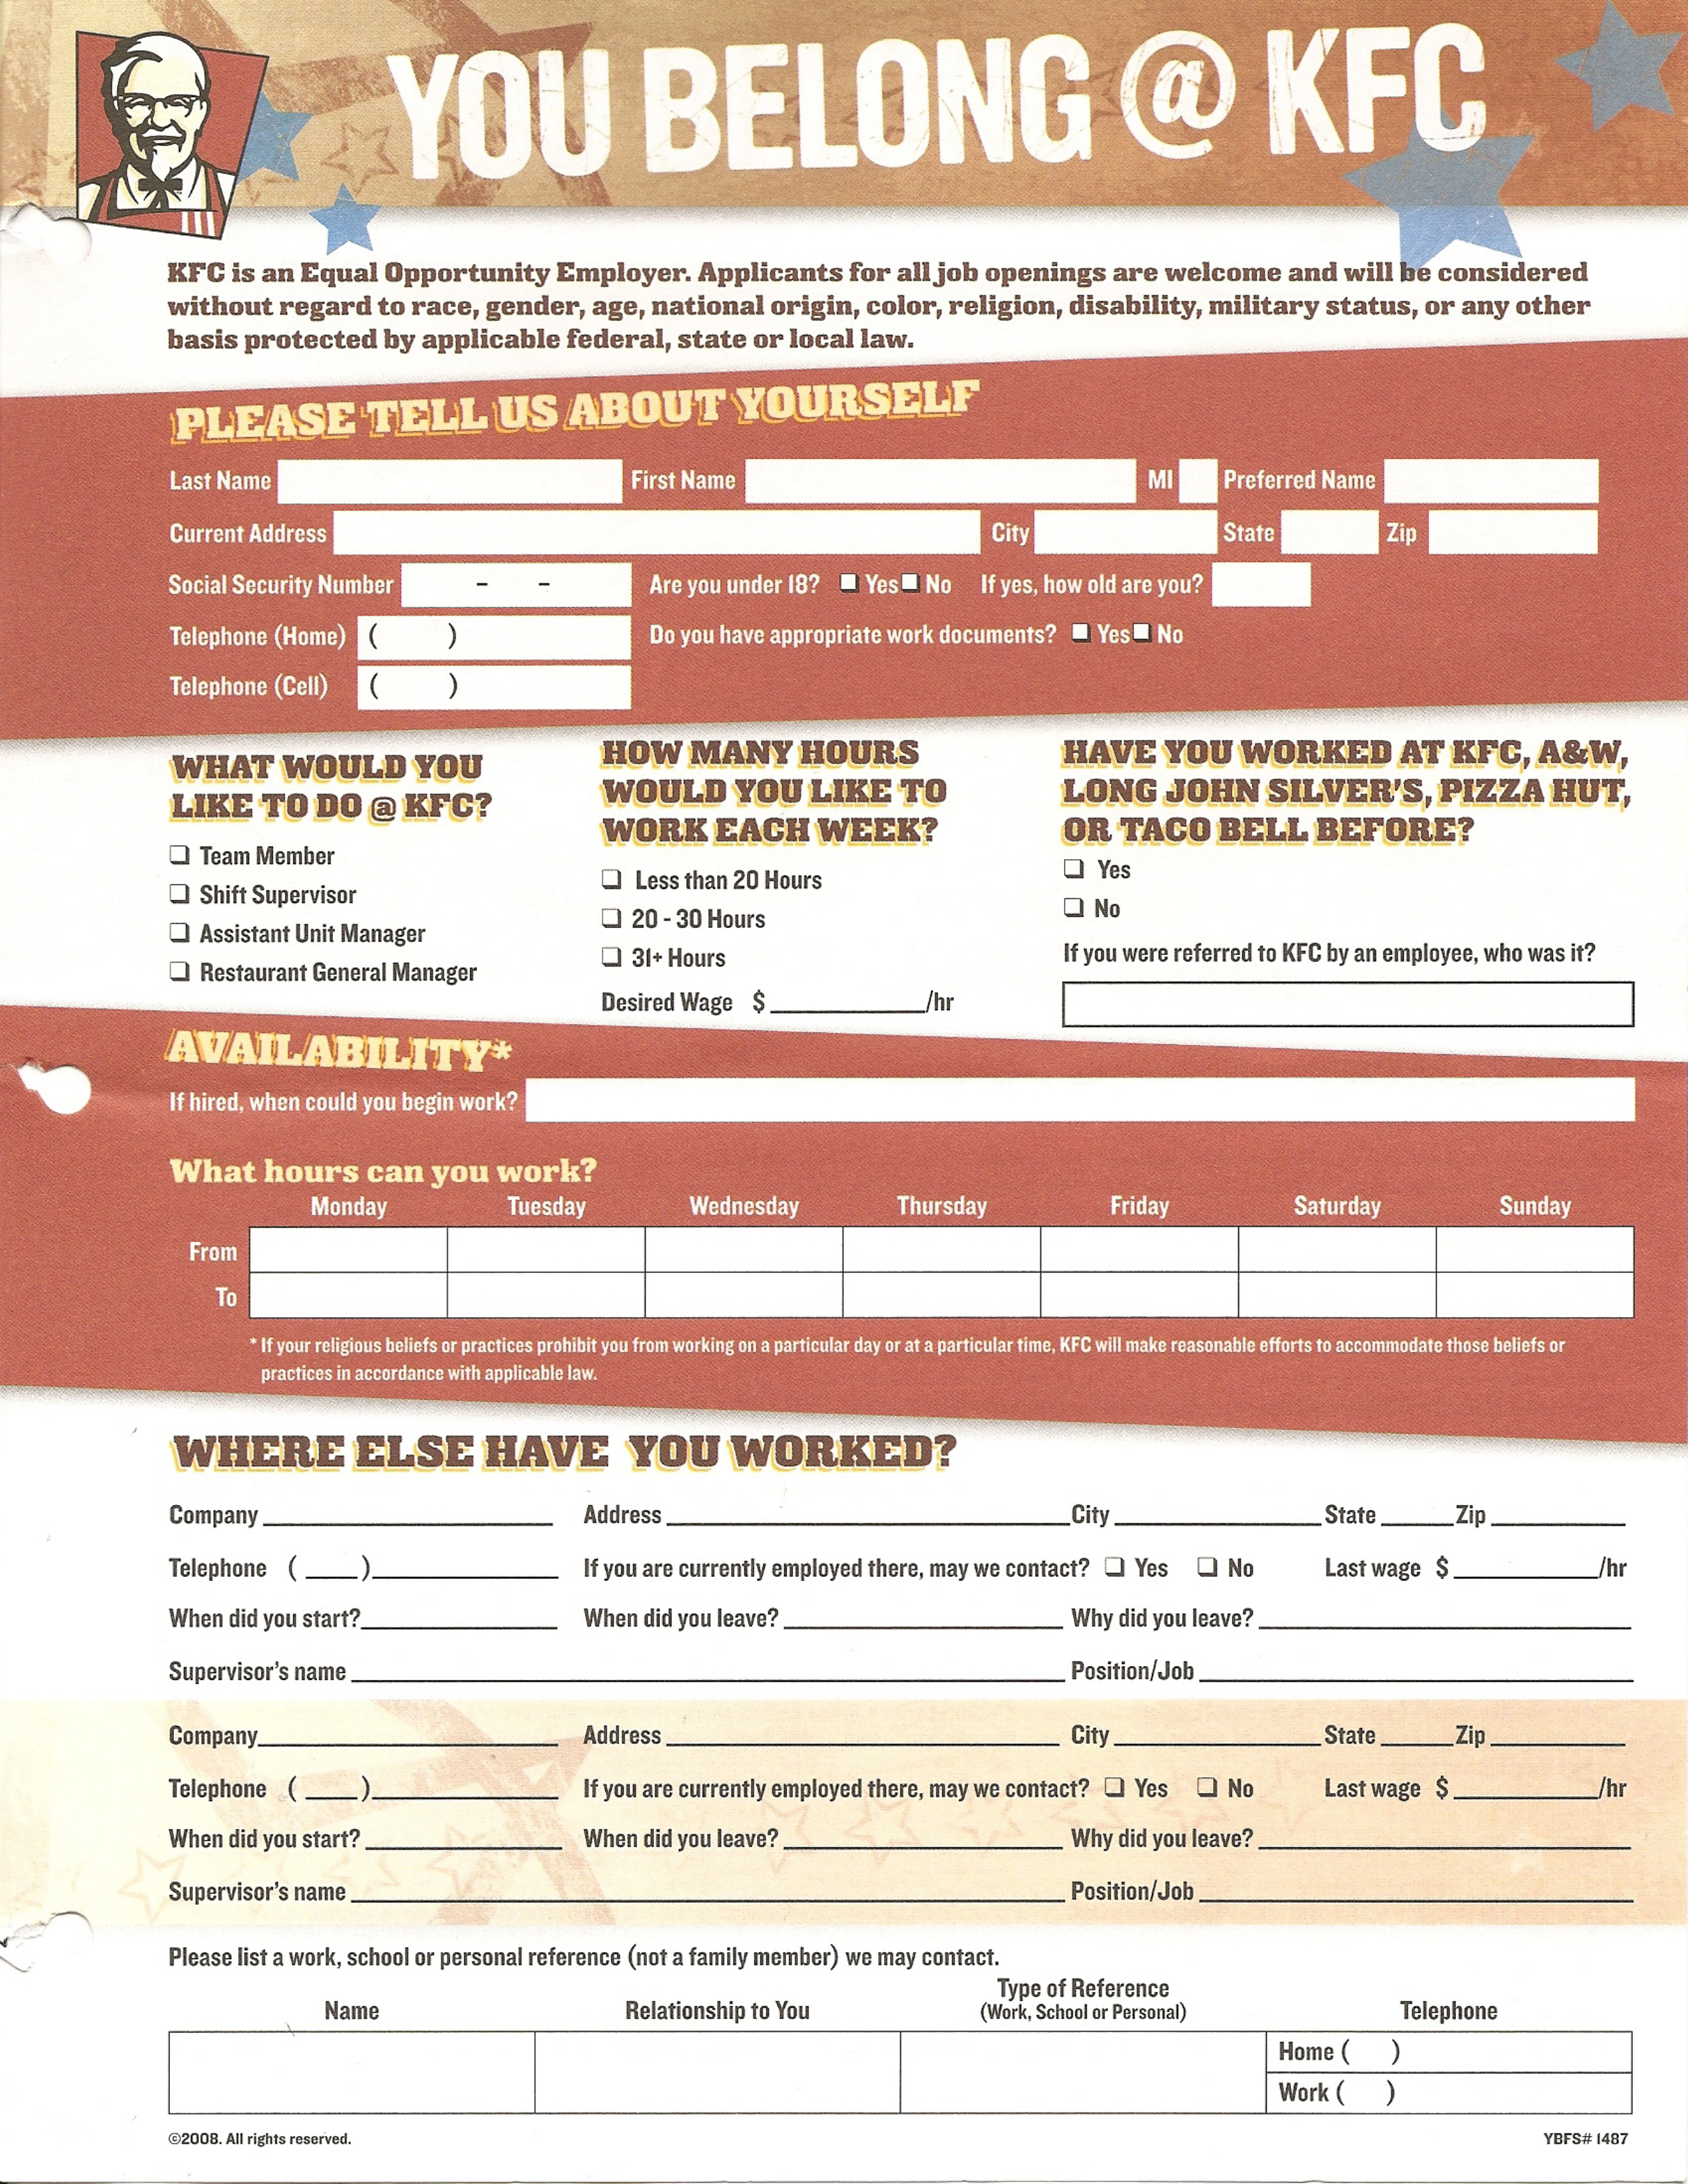 bg1 Job Application Form Dairy Queen on form.pdf, for employment printable free, letter for, ephrata inc, print out form,